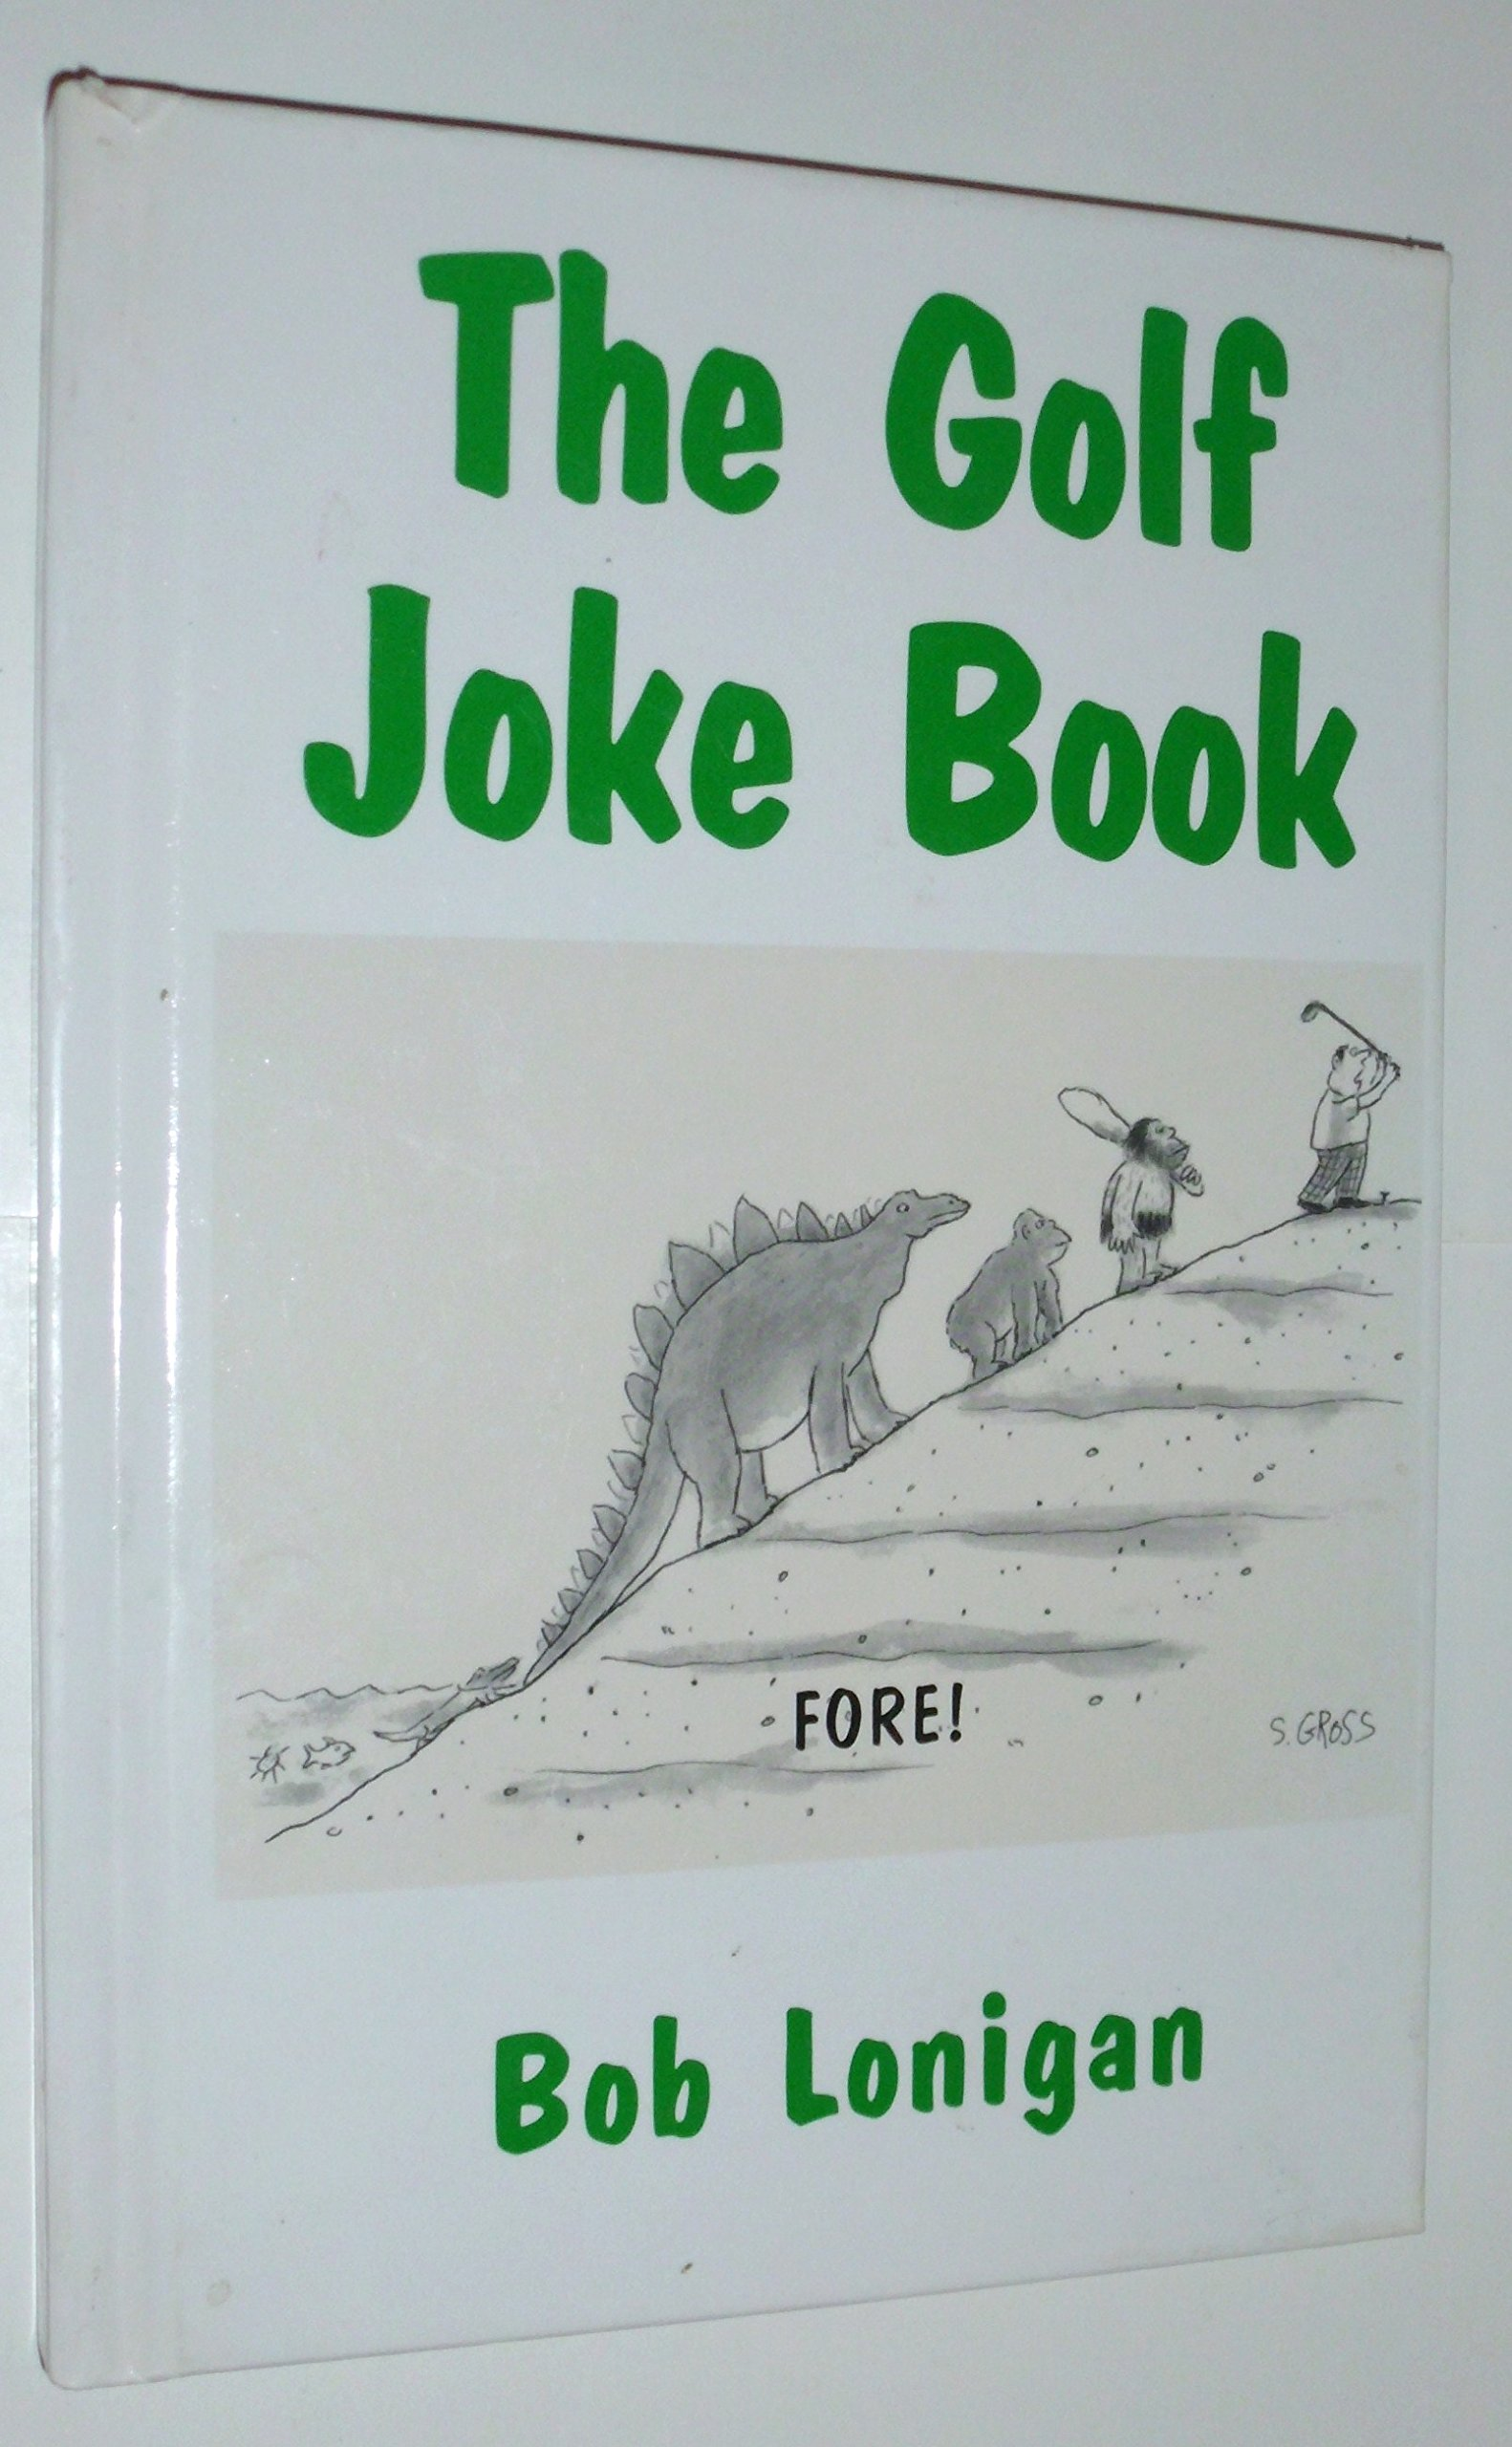 golf joke book Bob Lonigan product image